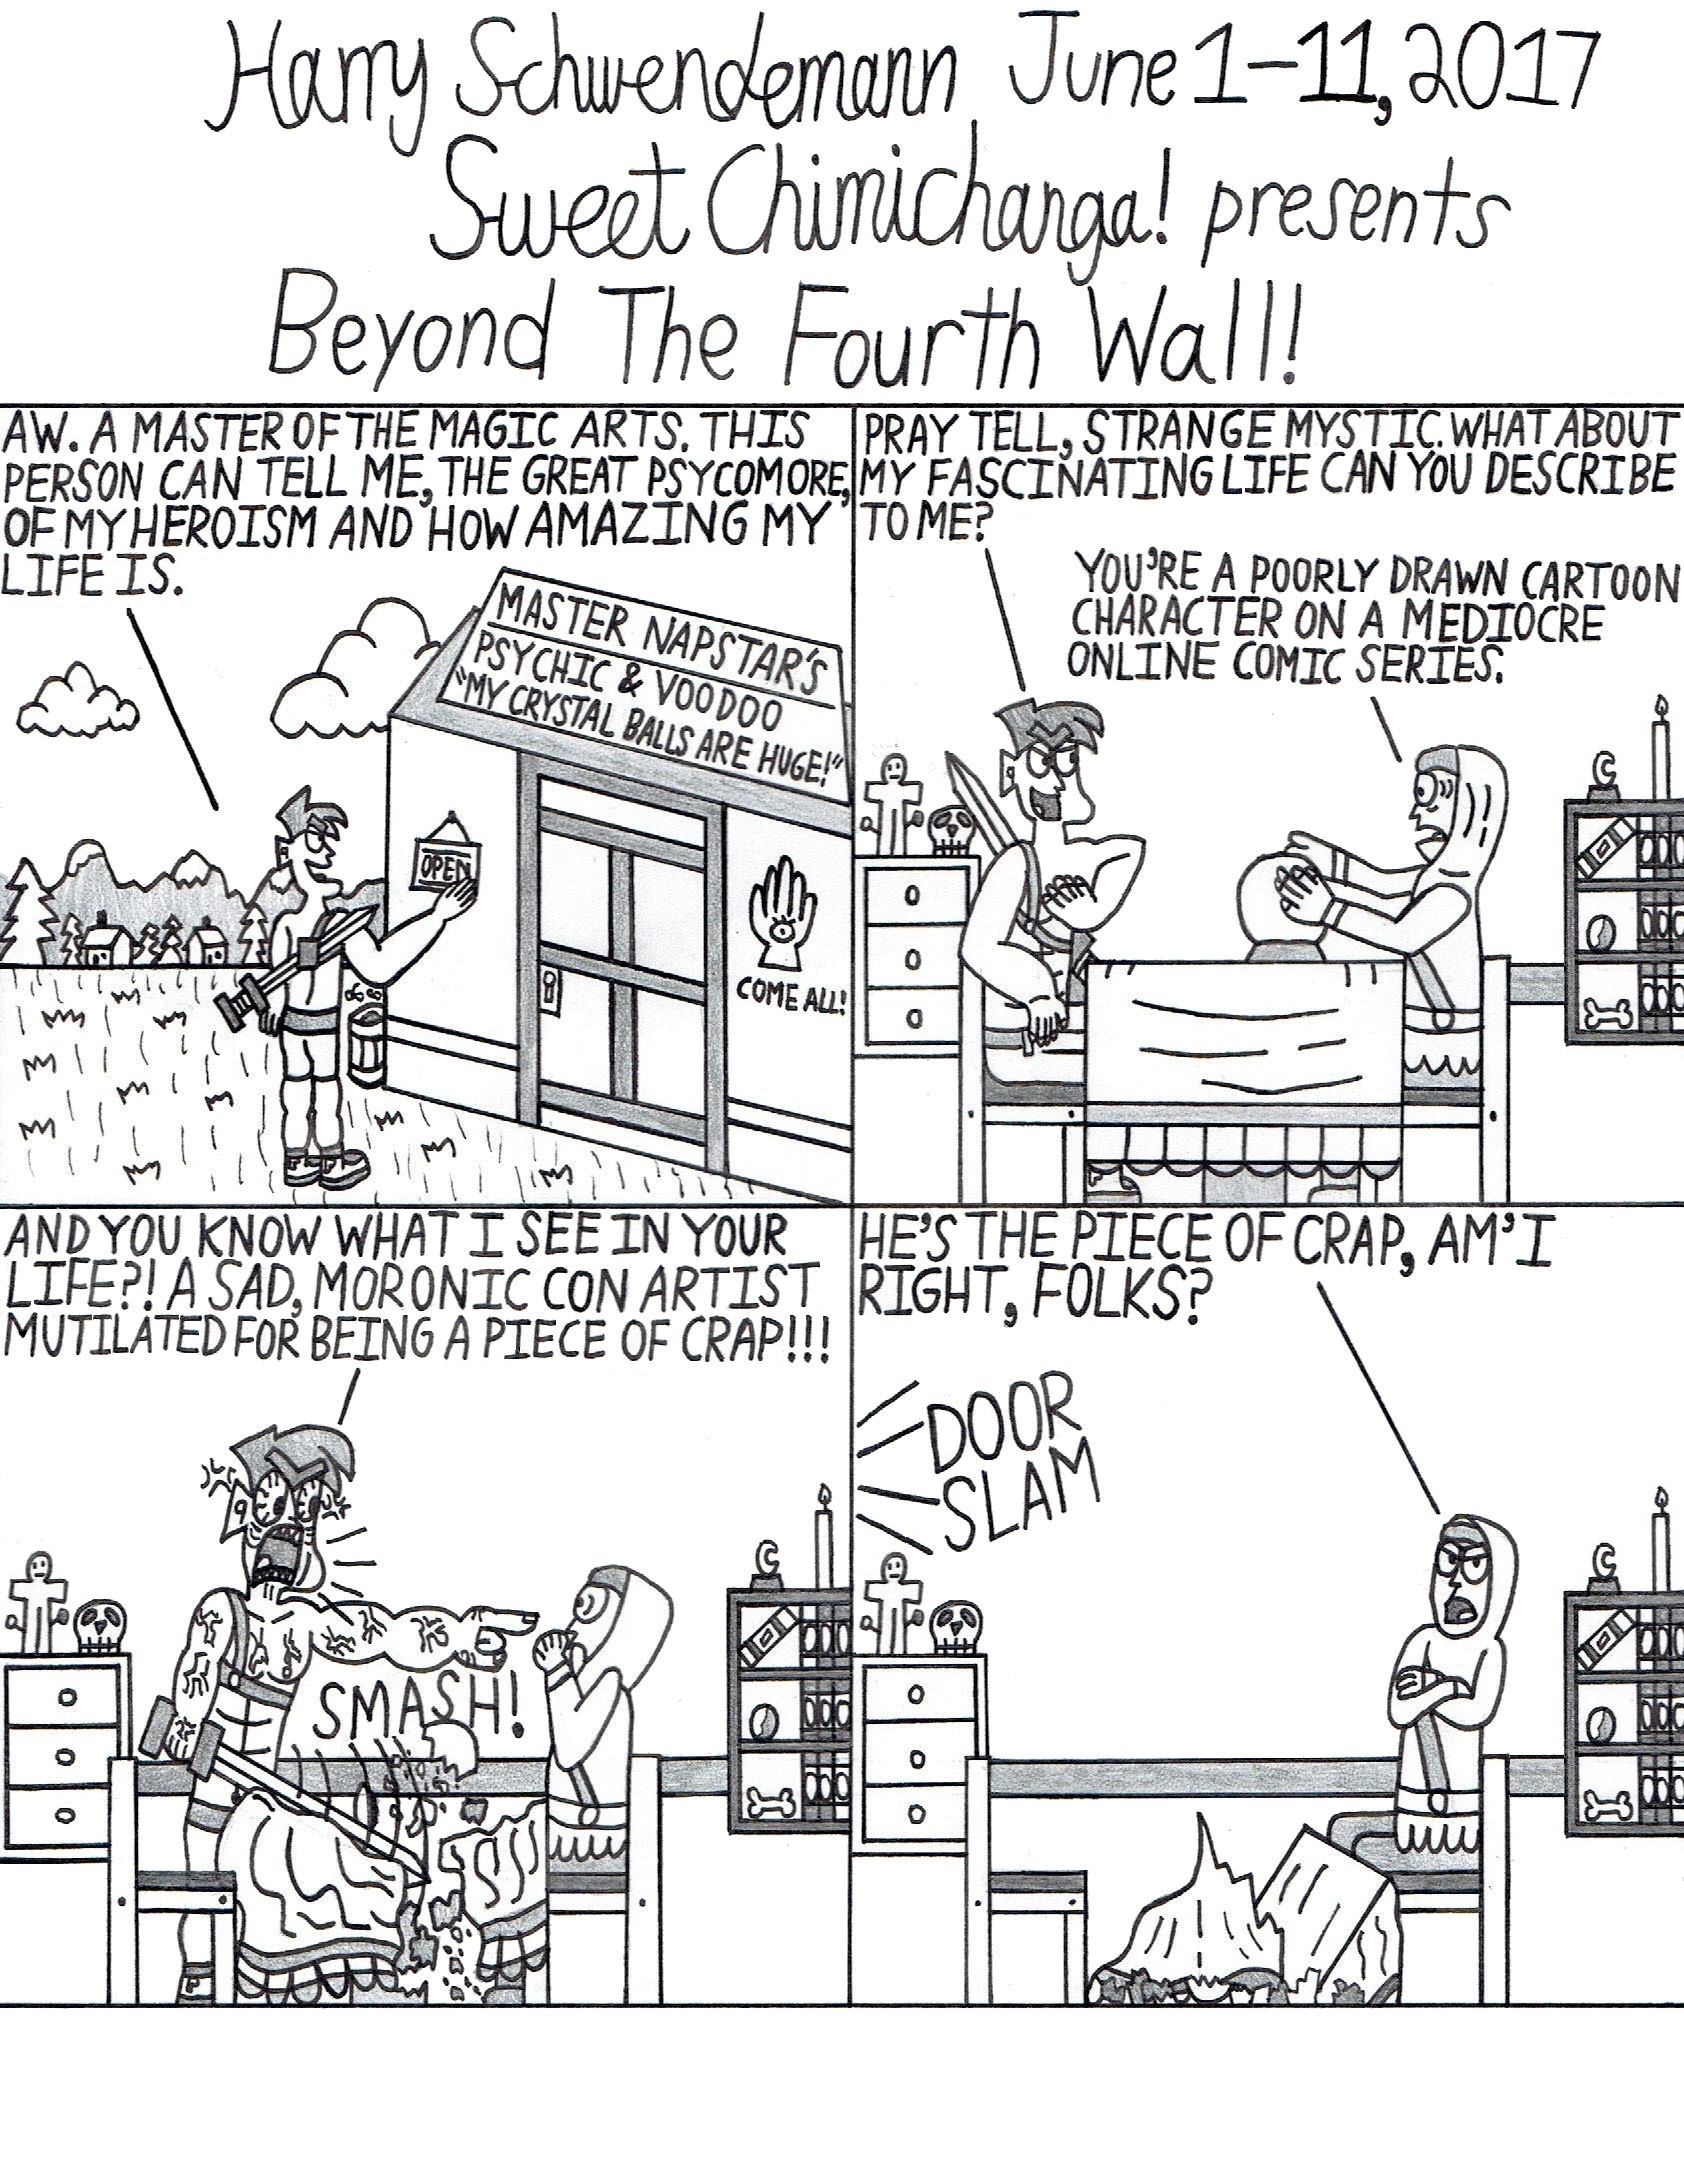 Beyond The Fourth Wall!